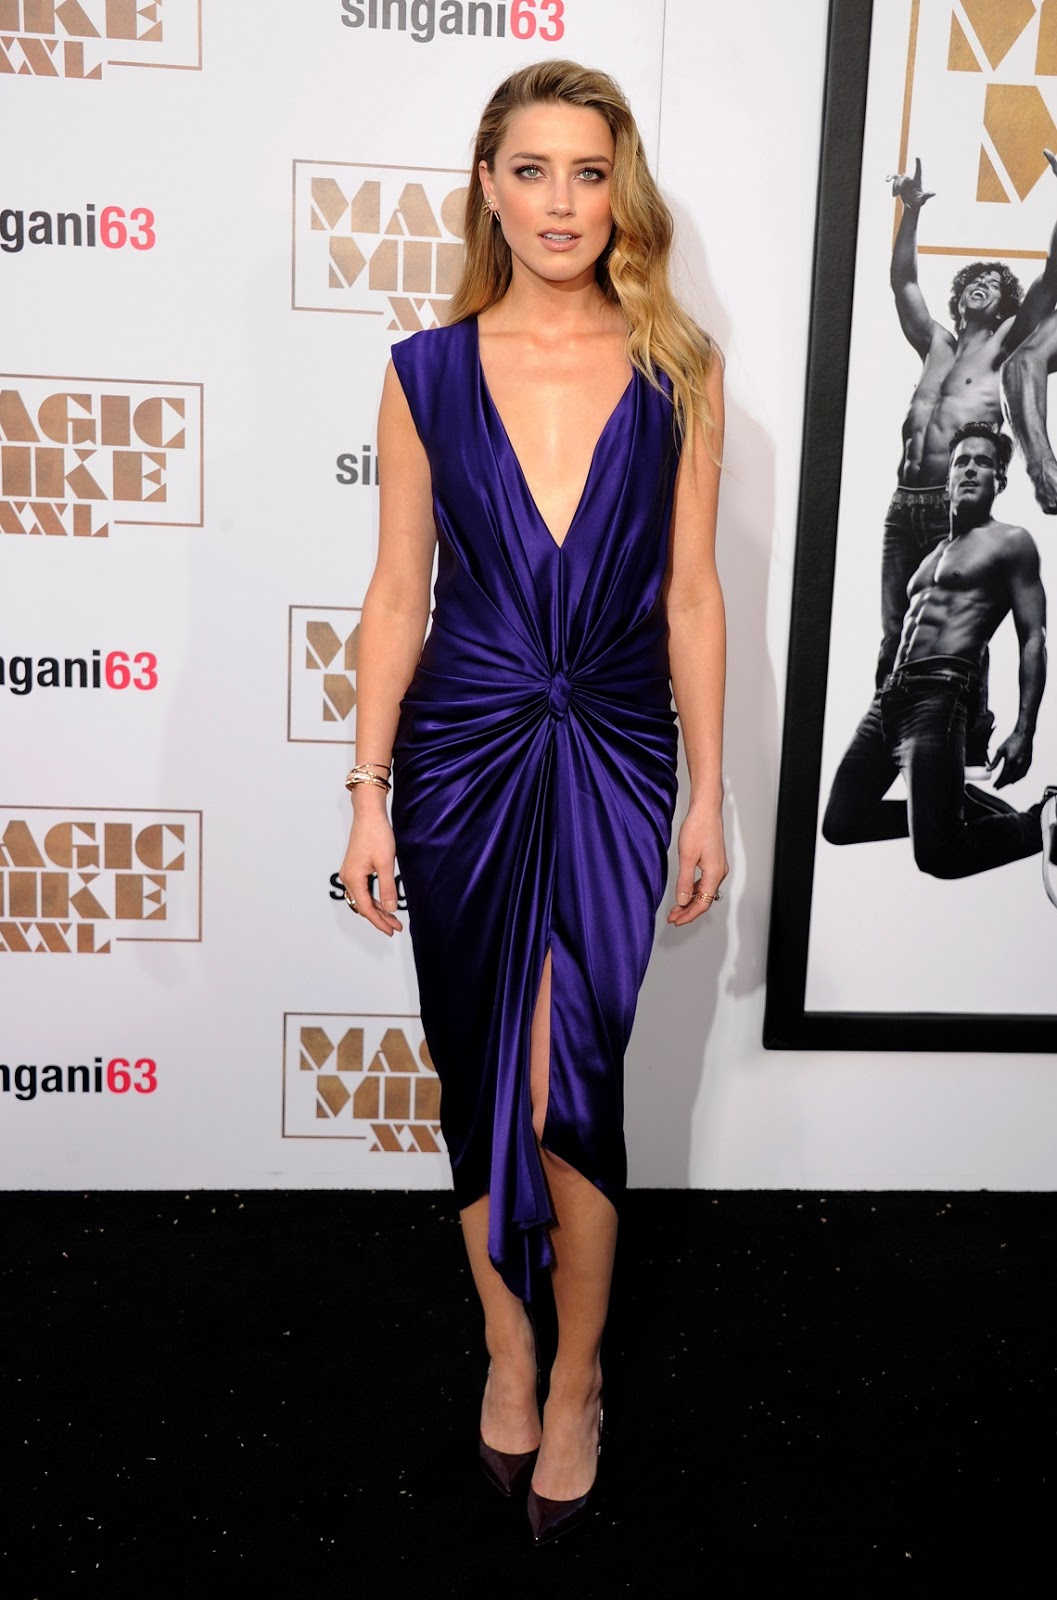 Amber Heard shows off skin in a plunging outfit at the 'Magic Mike XXL' LA premiere